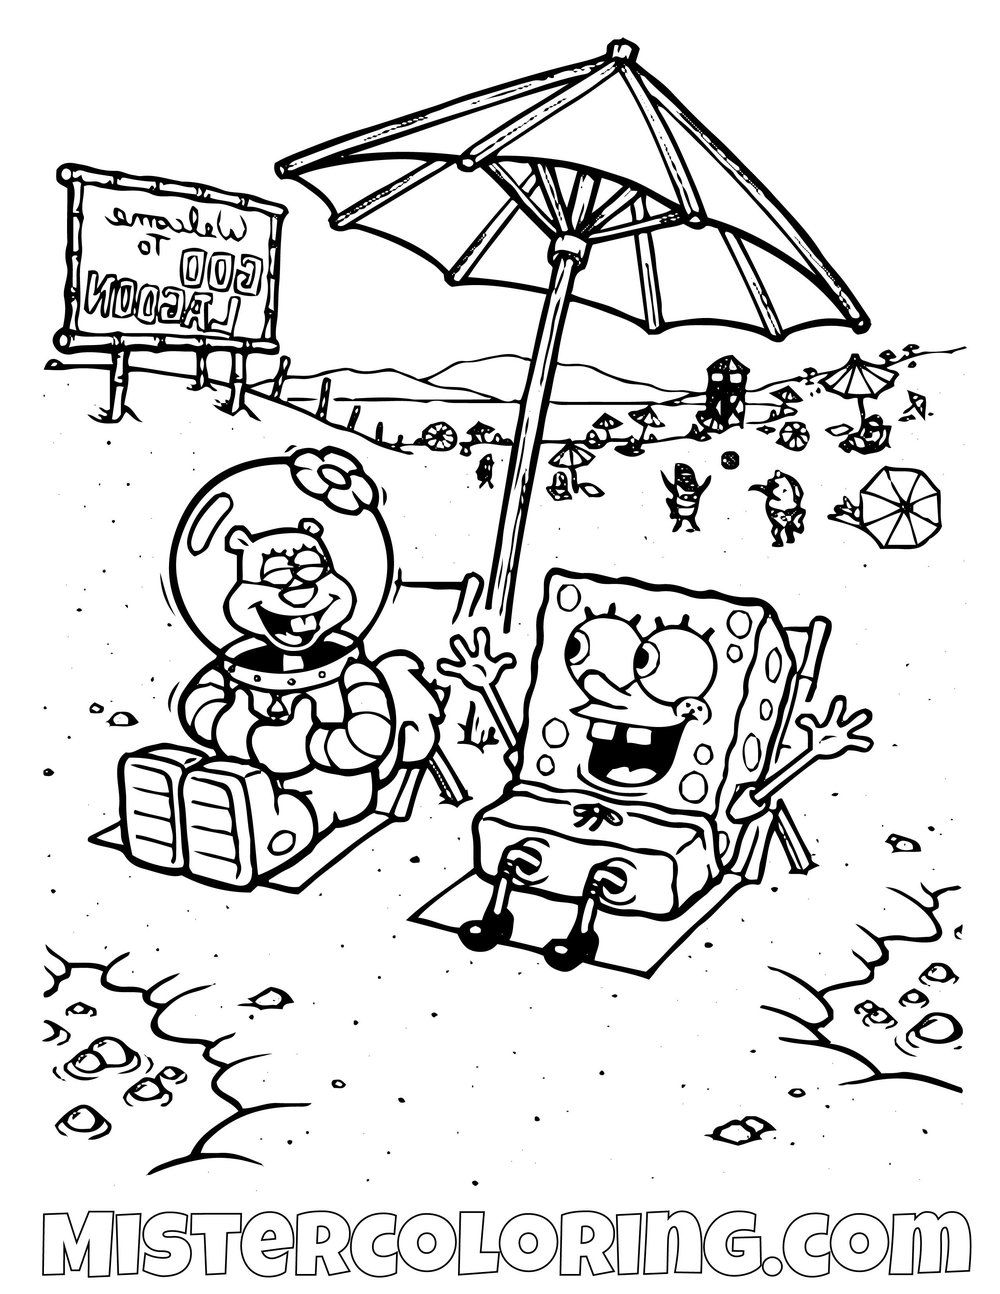 Spongebob And Sandy On The Beach Spongebob Squarepants Coloring Pages For Kids Coloring Pages For Kids Coloring Pages Coloring Pages For Boys [ 1294 x 1000 Pixel ]